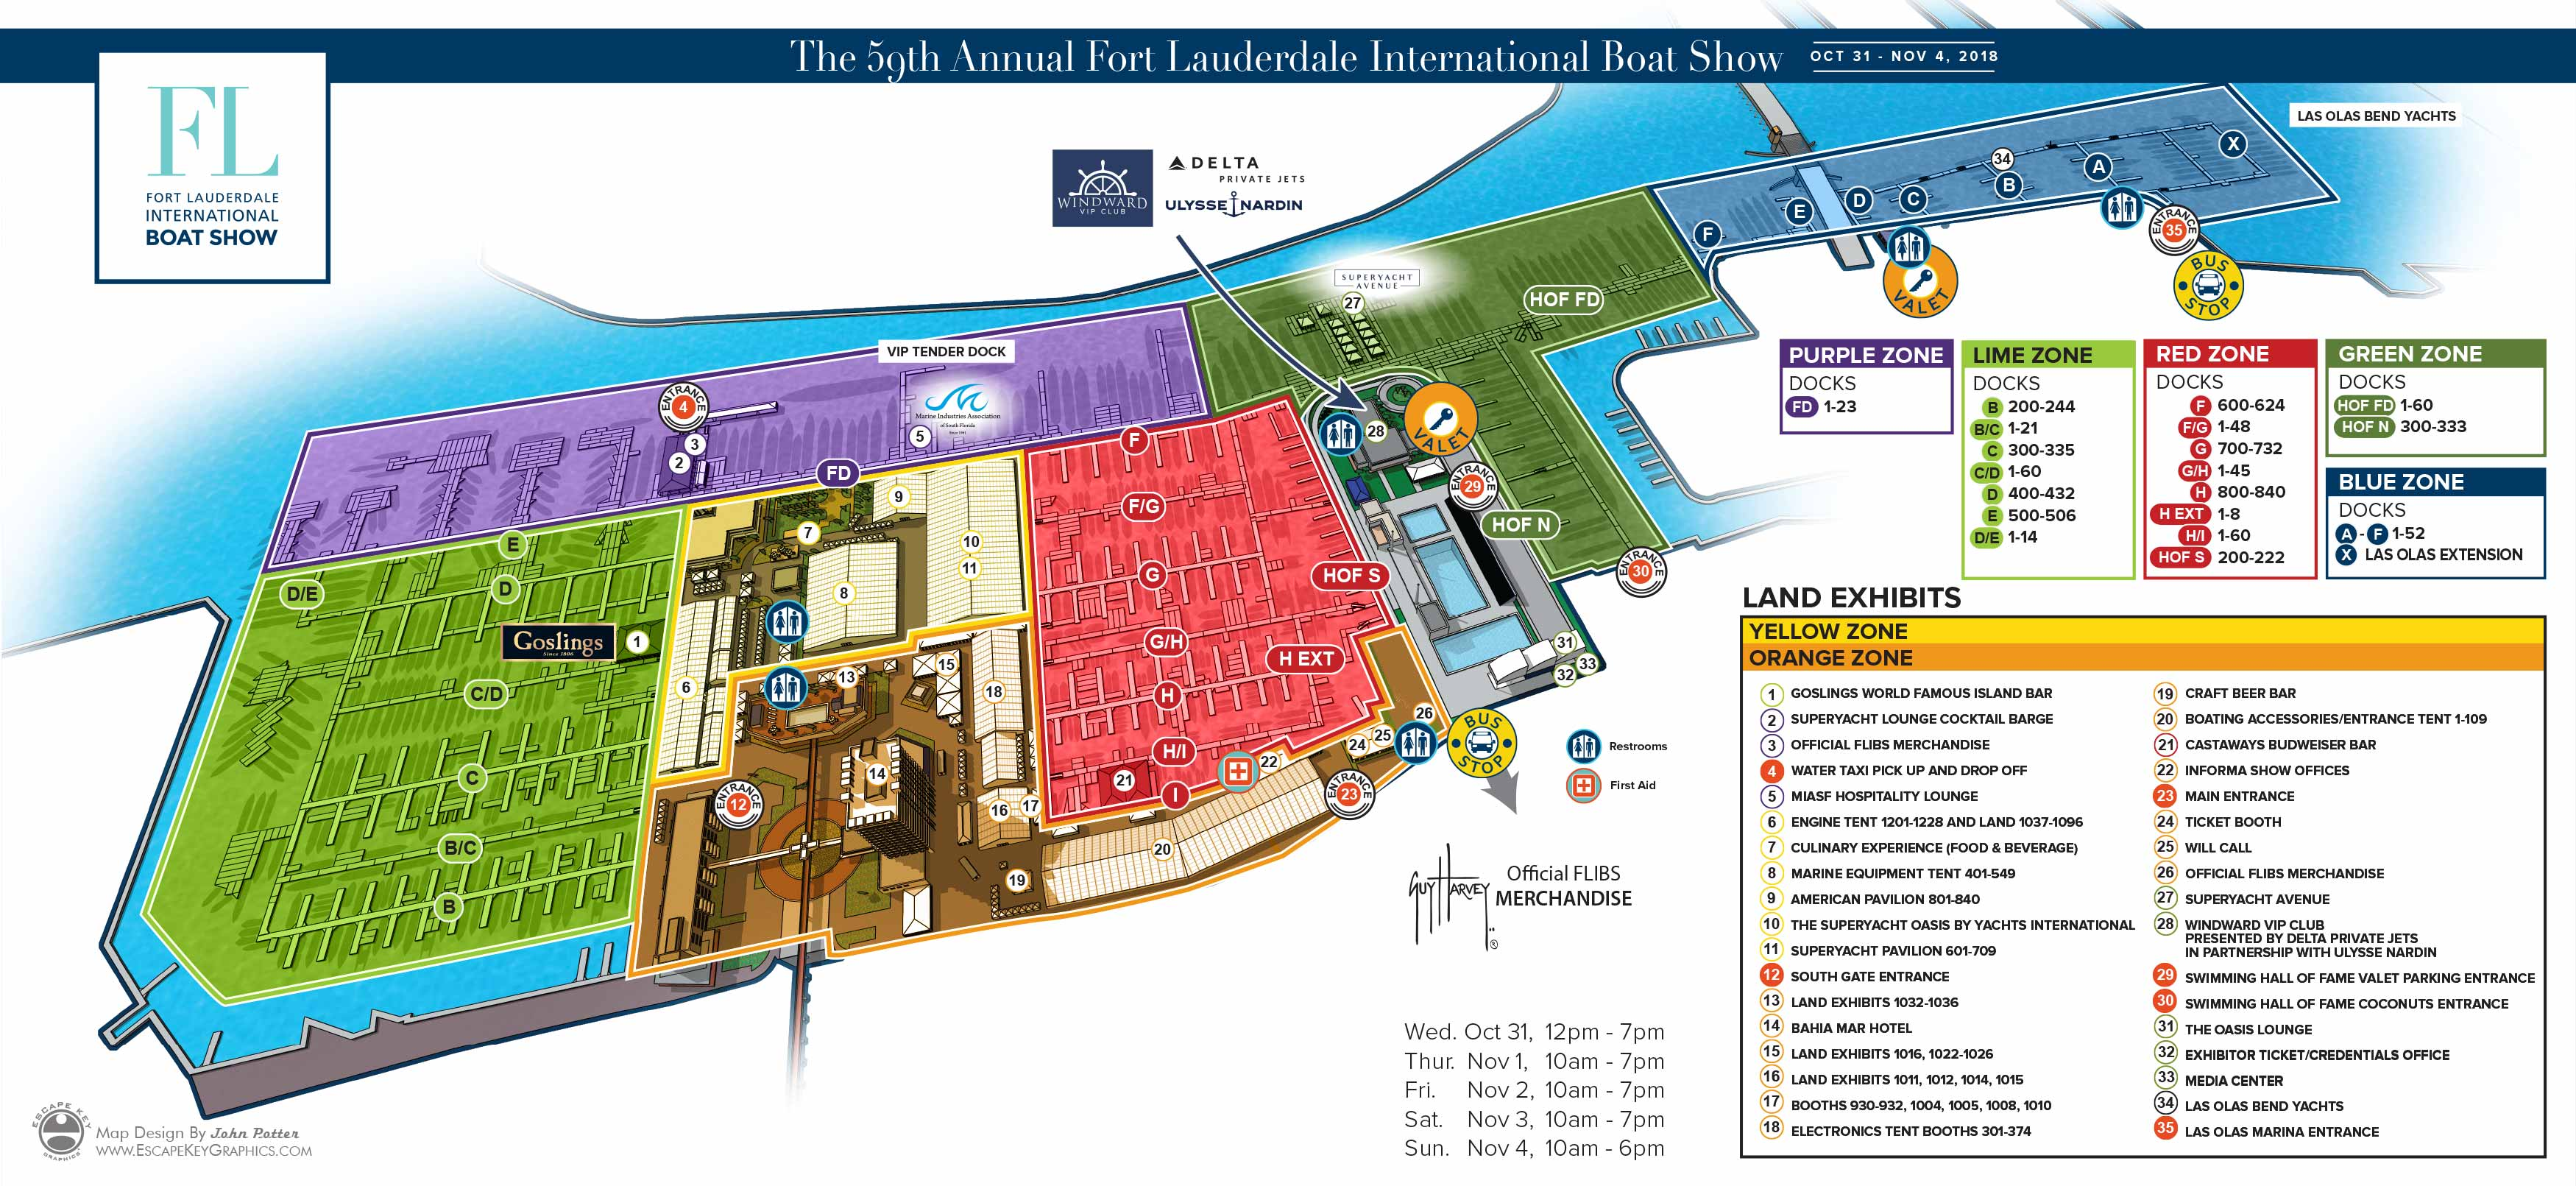 map of fort lauderdale area - maping resources